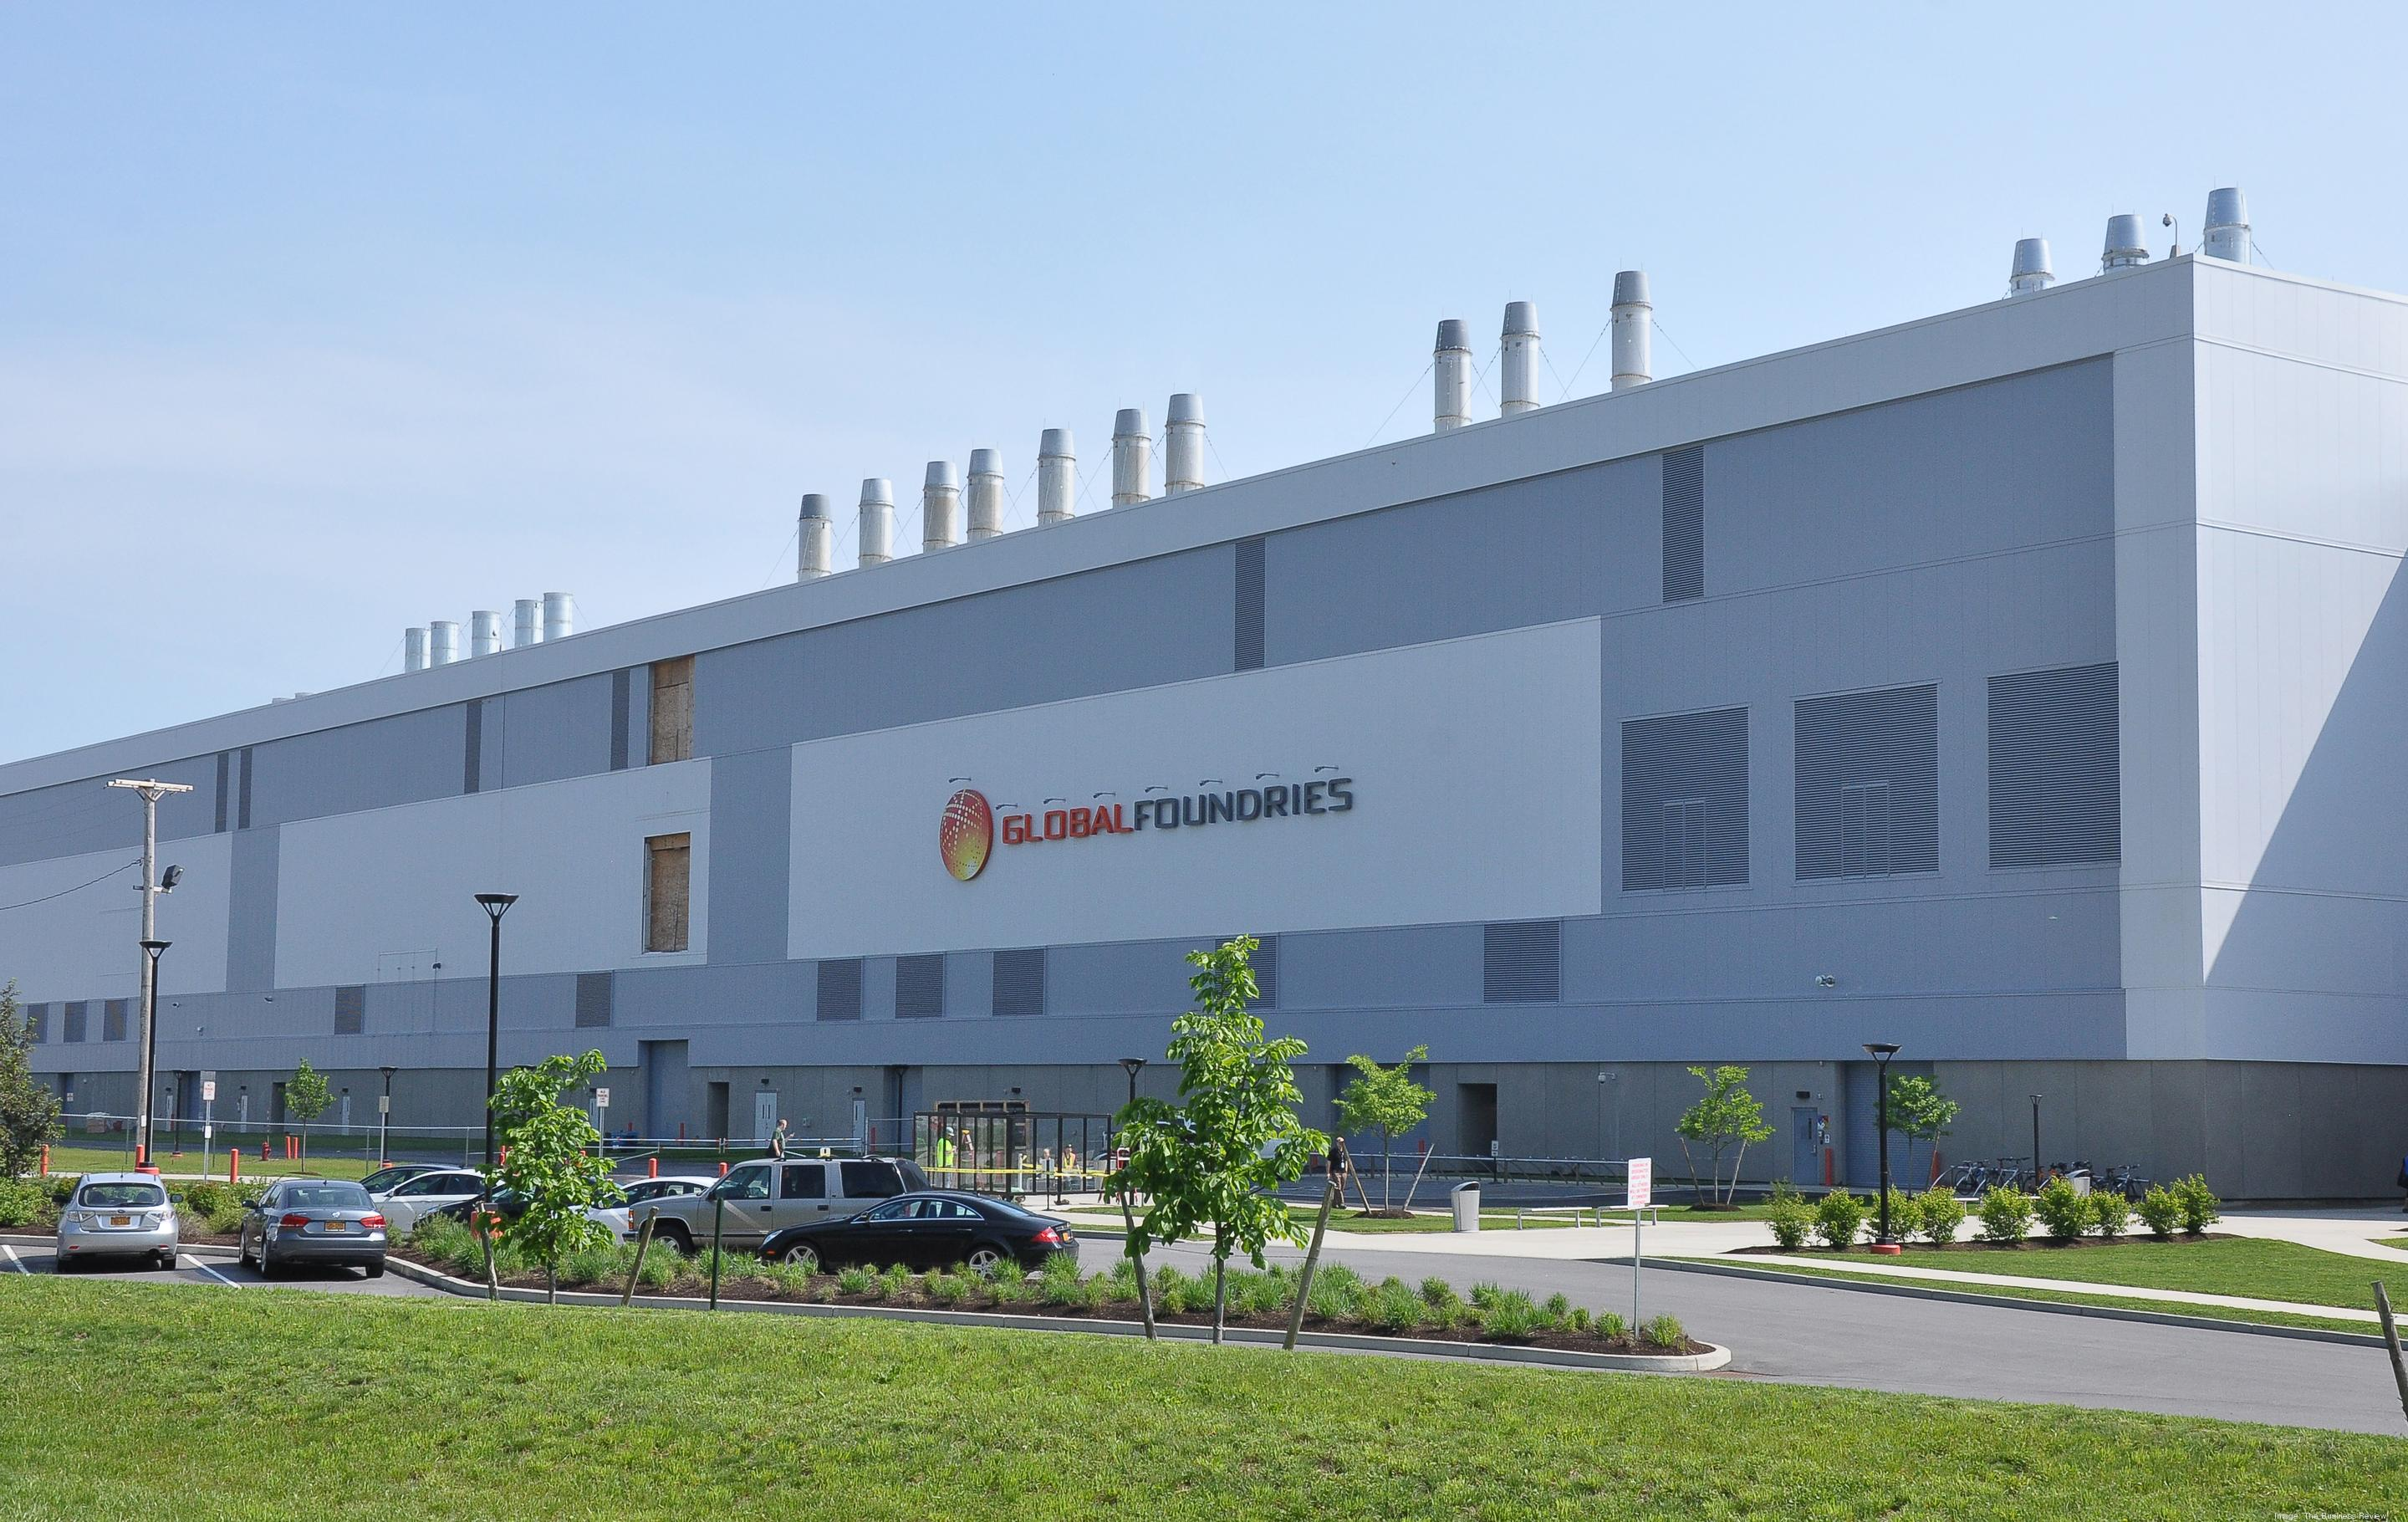 GlobalFoundries (Malta, New York plant 001)